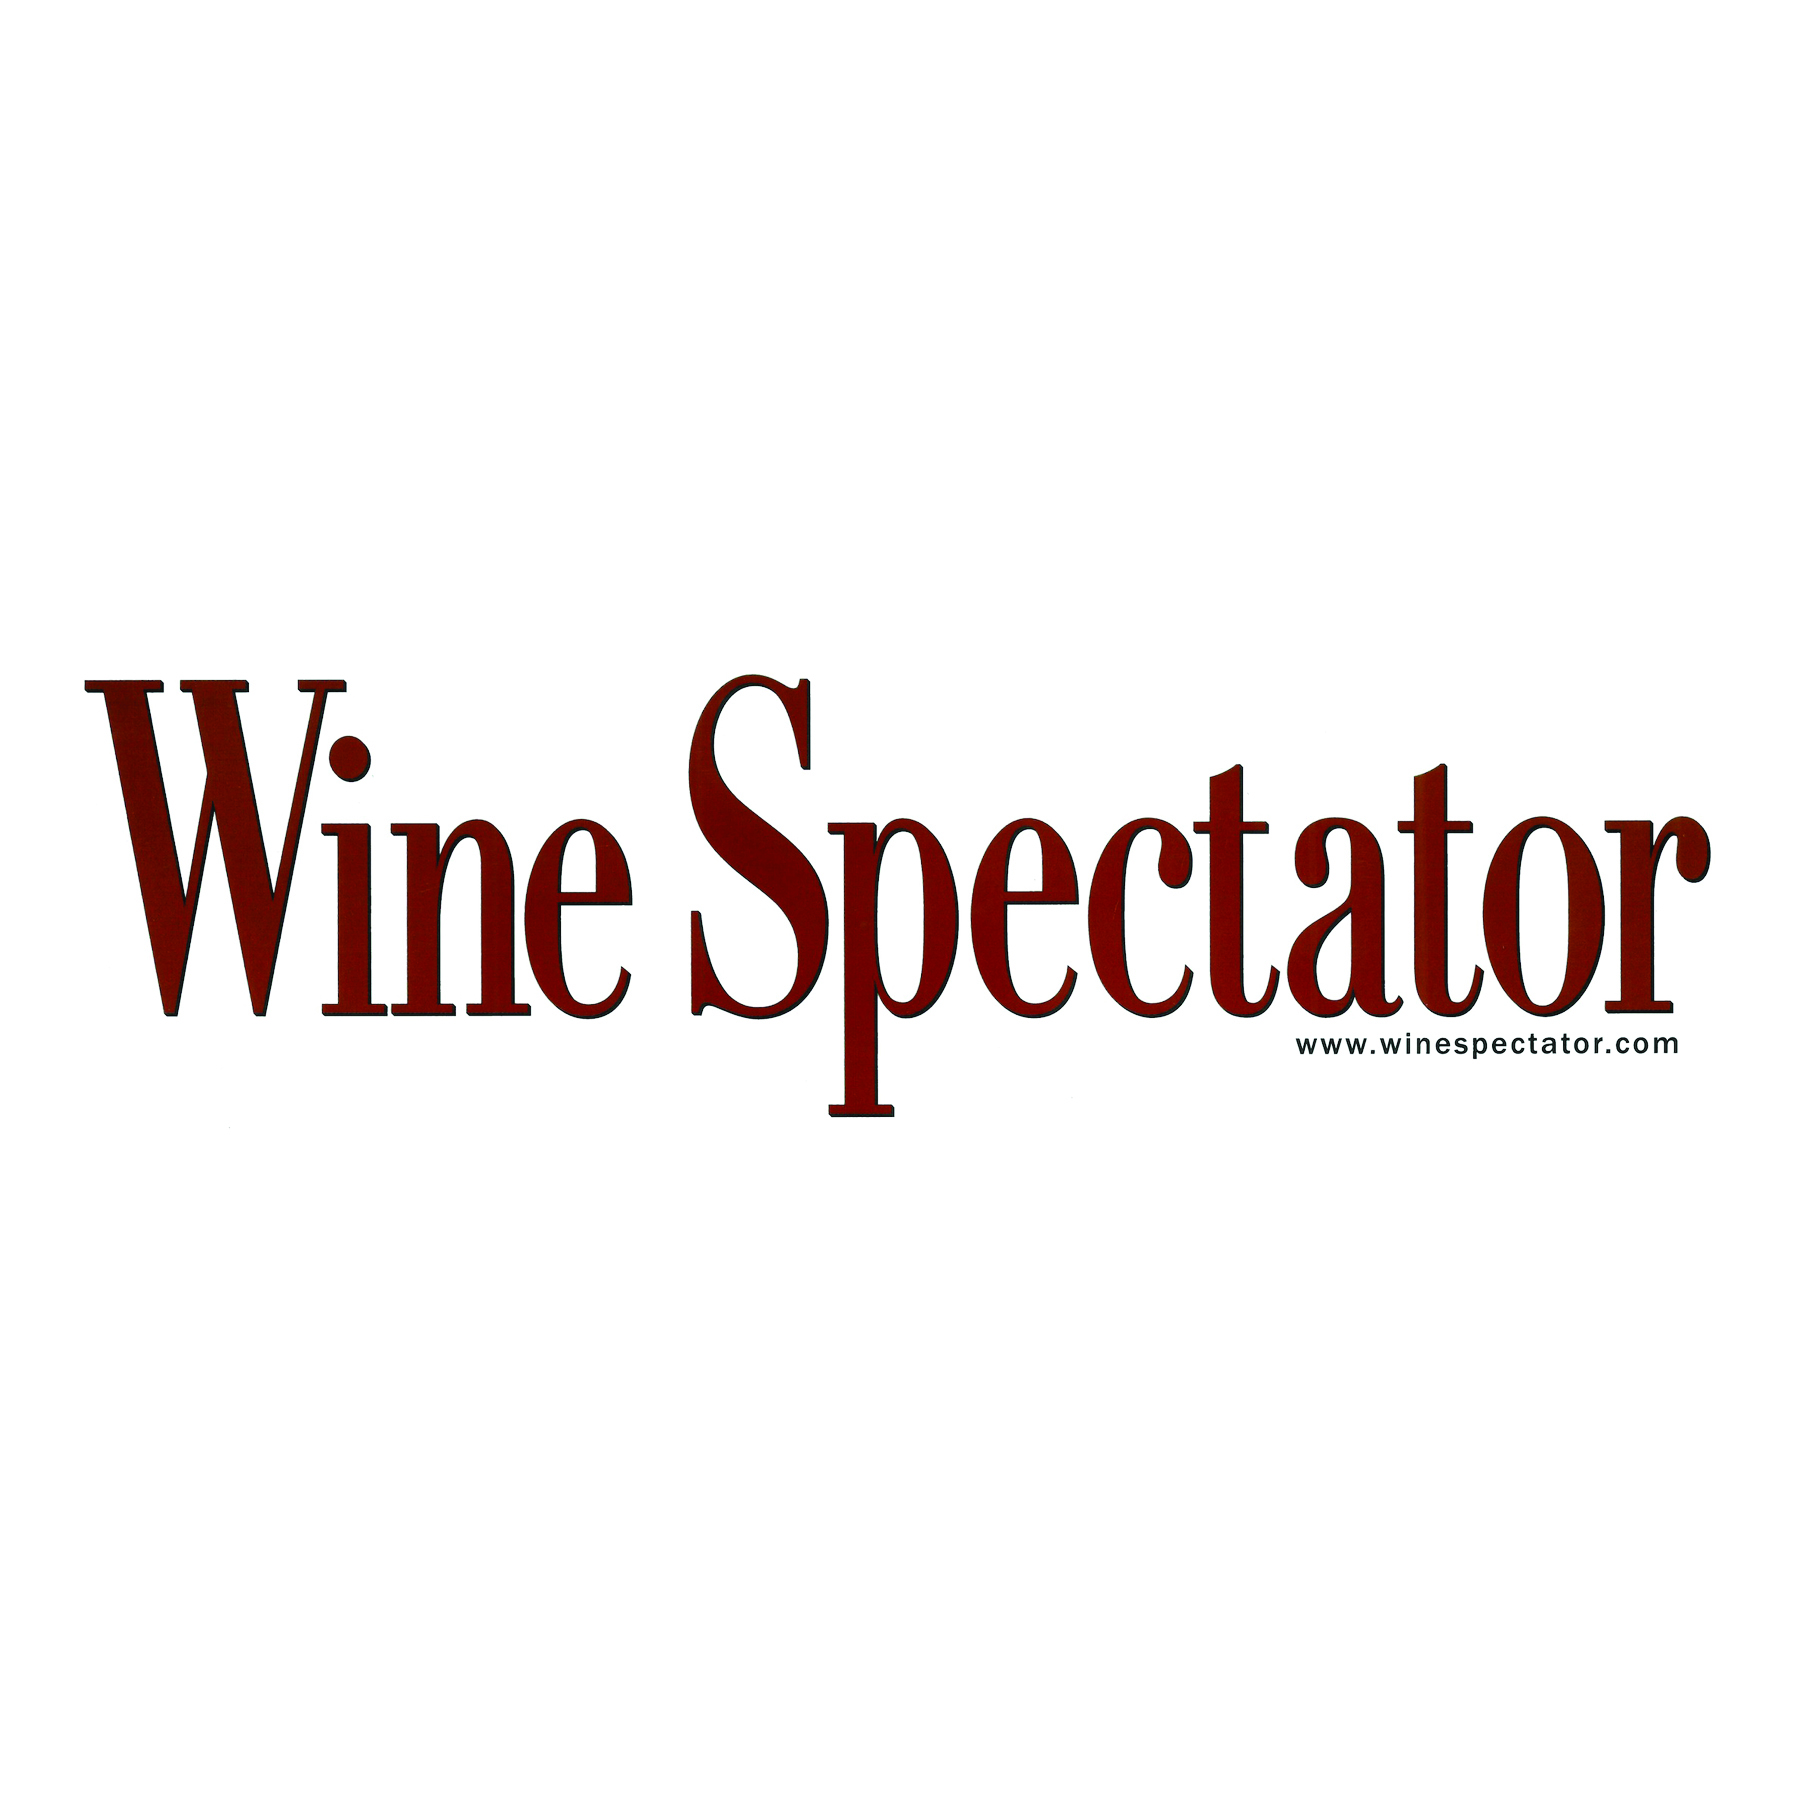 Wine Spectator   Reviews of Purple Hands Winery's highly scored wines from Wine Spectator.